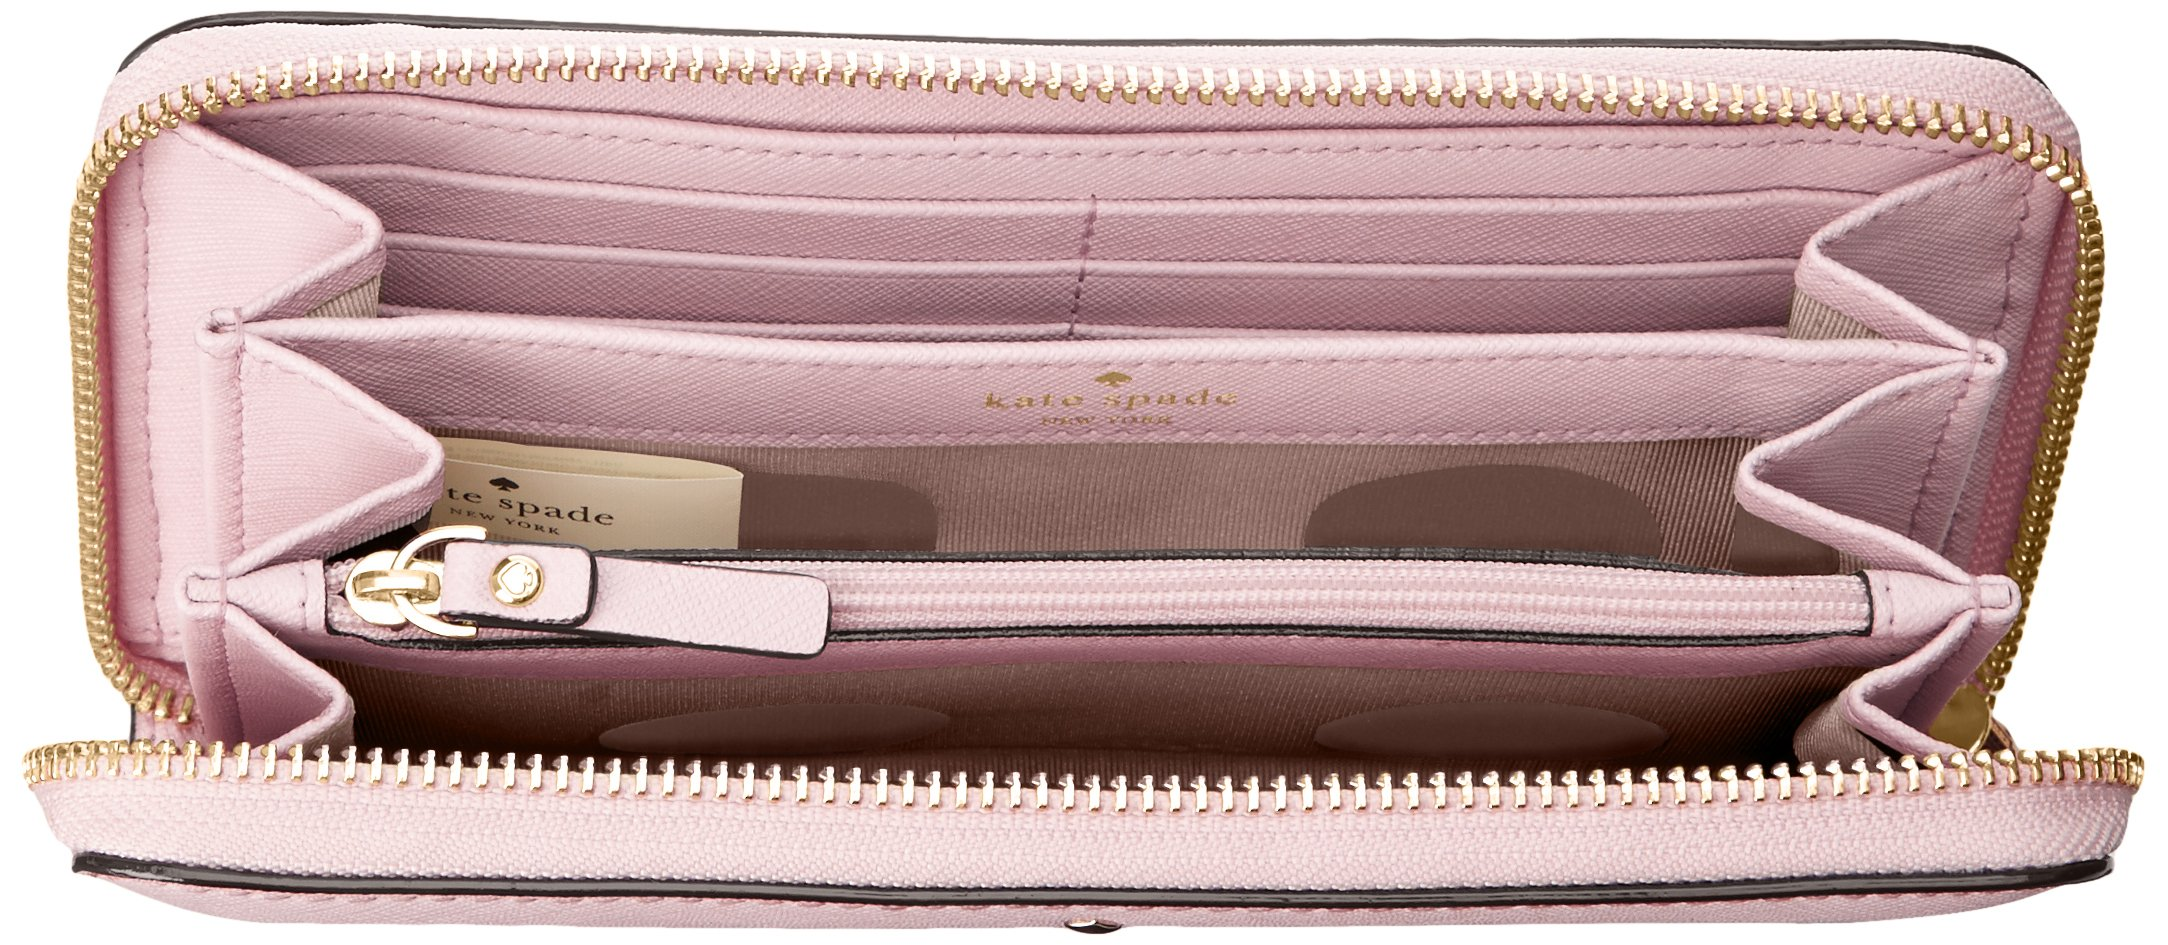 kate spade new york Cedar Street Lacey Wallet, Pink Blush, One Size by Kate Spade New York (Image #4)